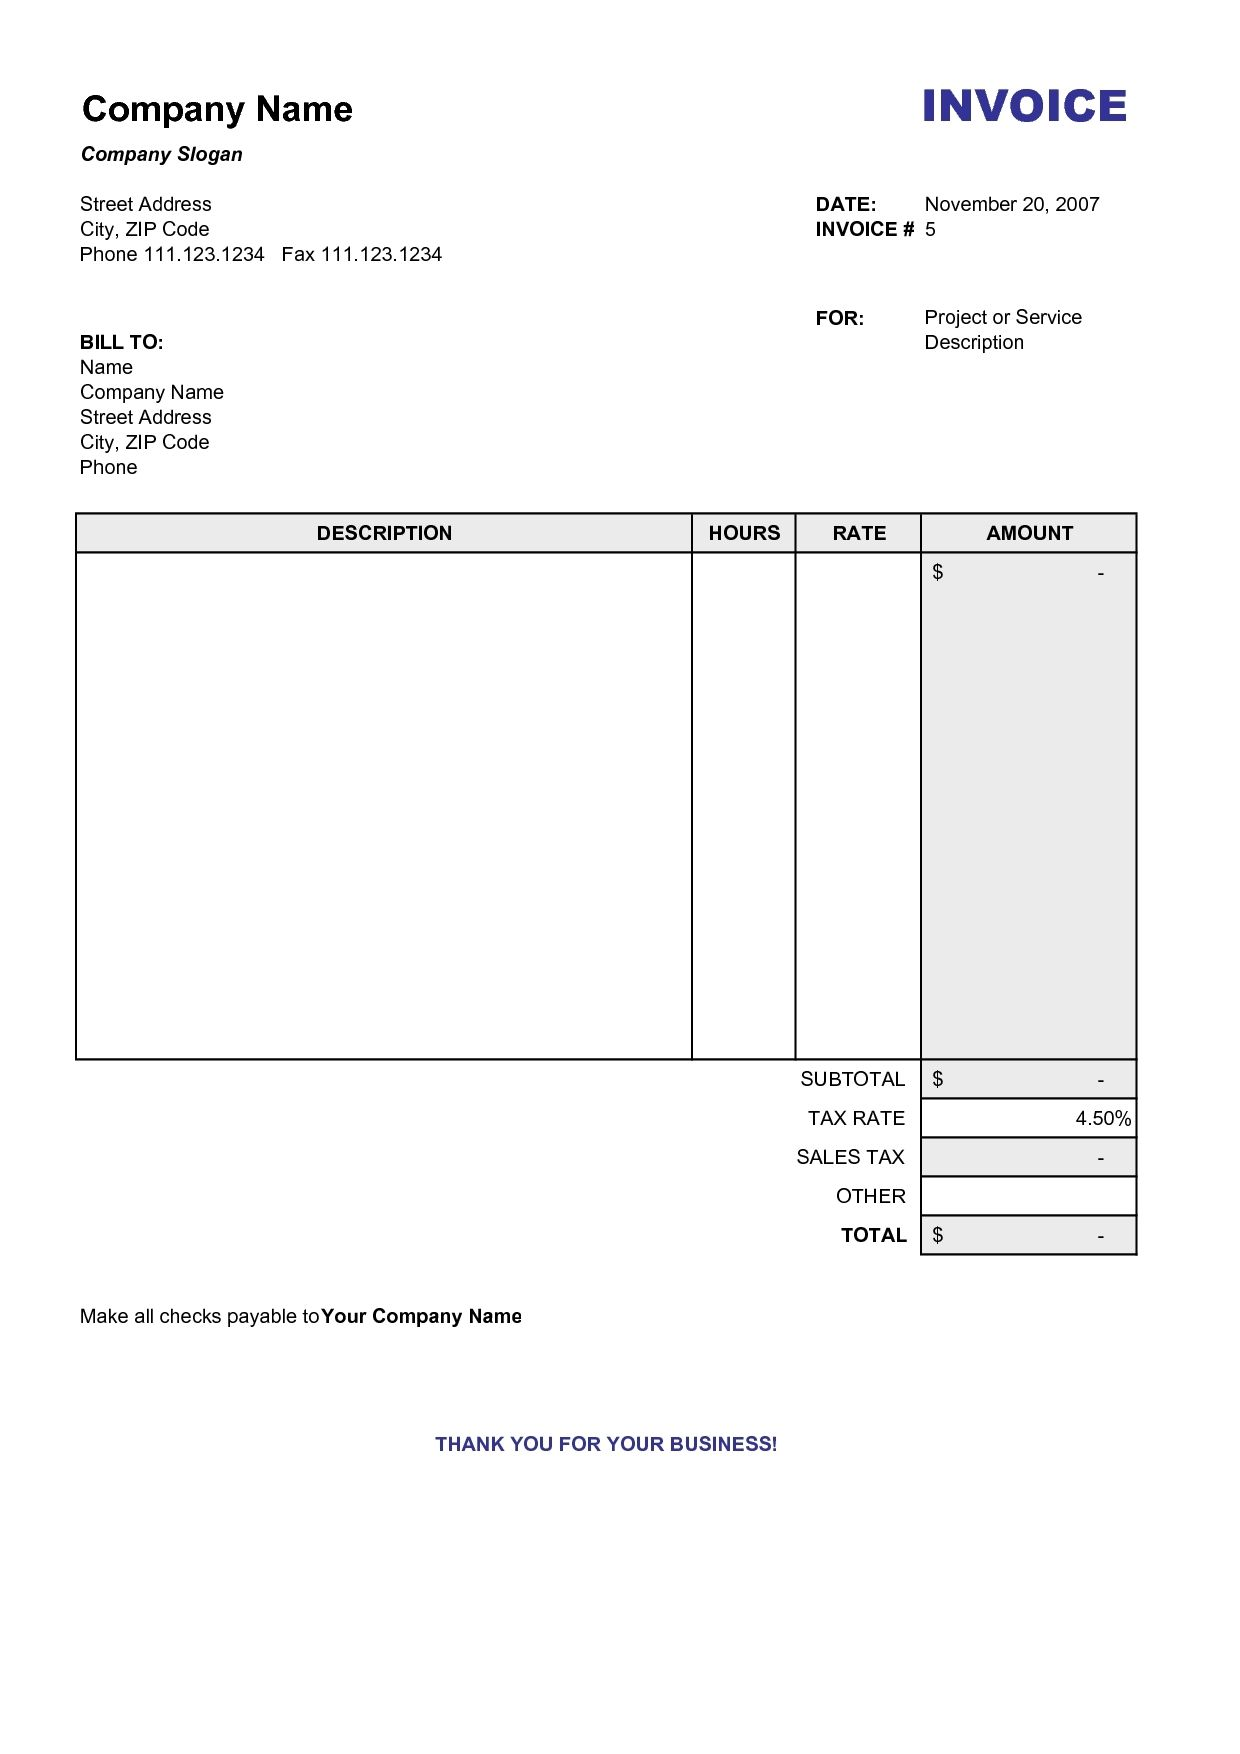 Copy Of A Blank Invoice Invoice Template Free Copy Of Blank - Blank invoice word document for service business